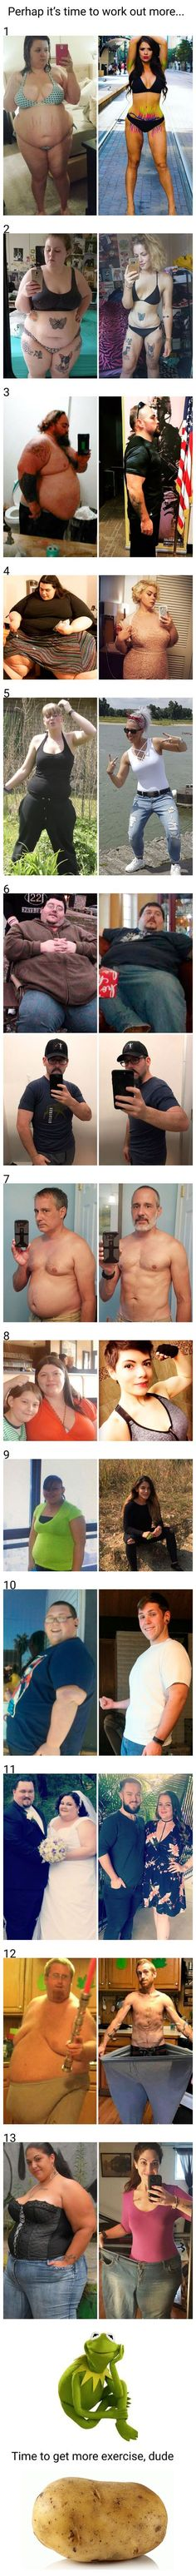 How much weight can i lose using laxatives photo 10